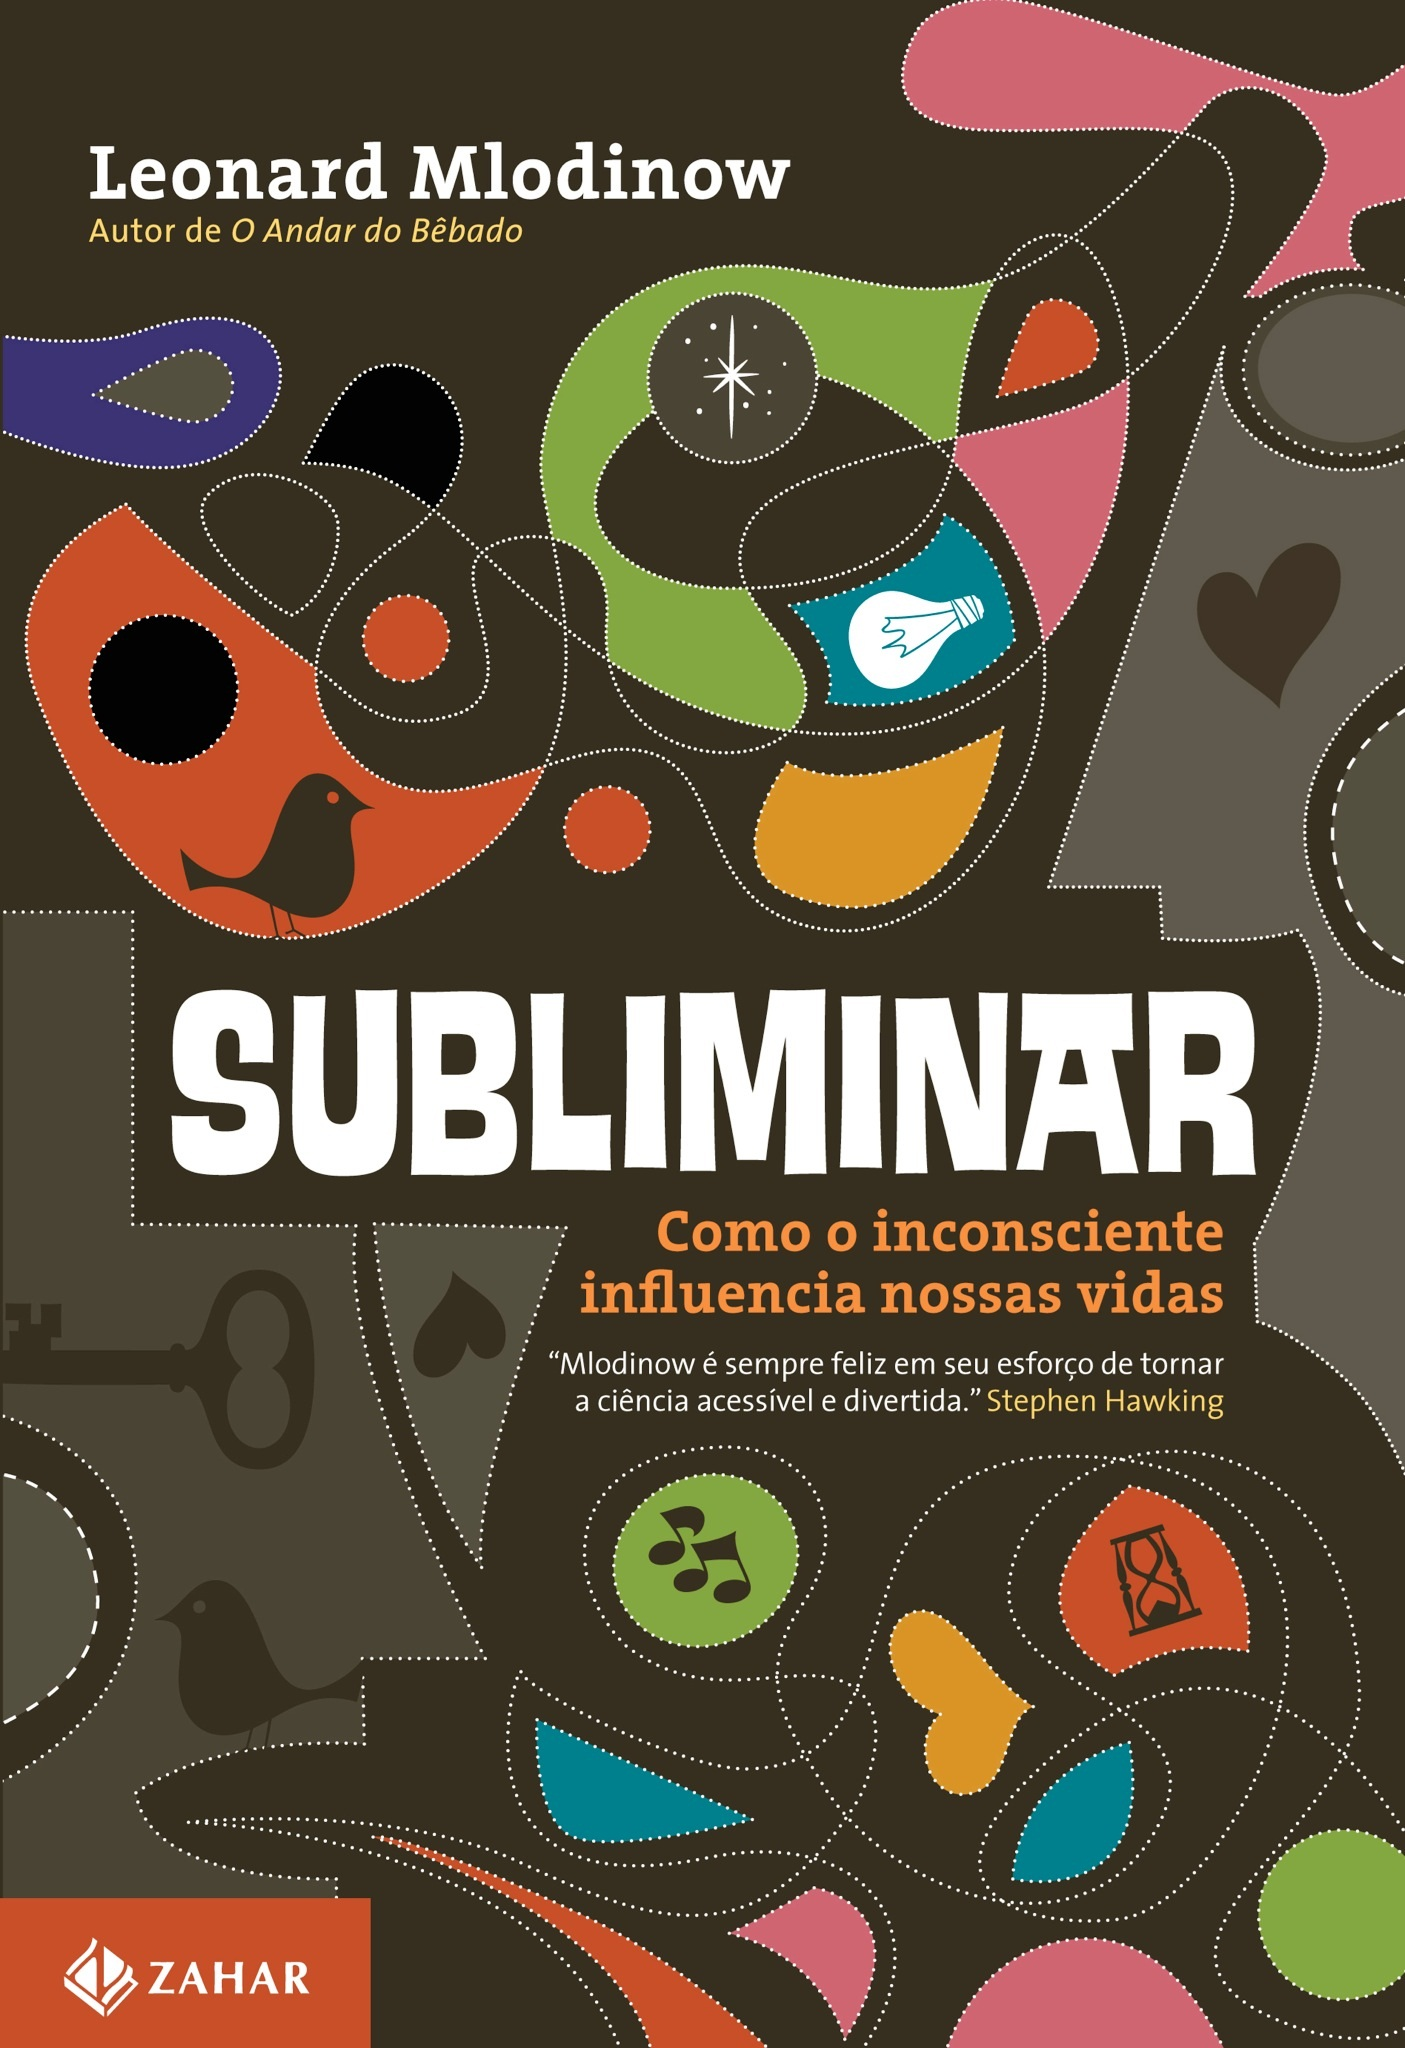 Subliminar, competence coaching